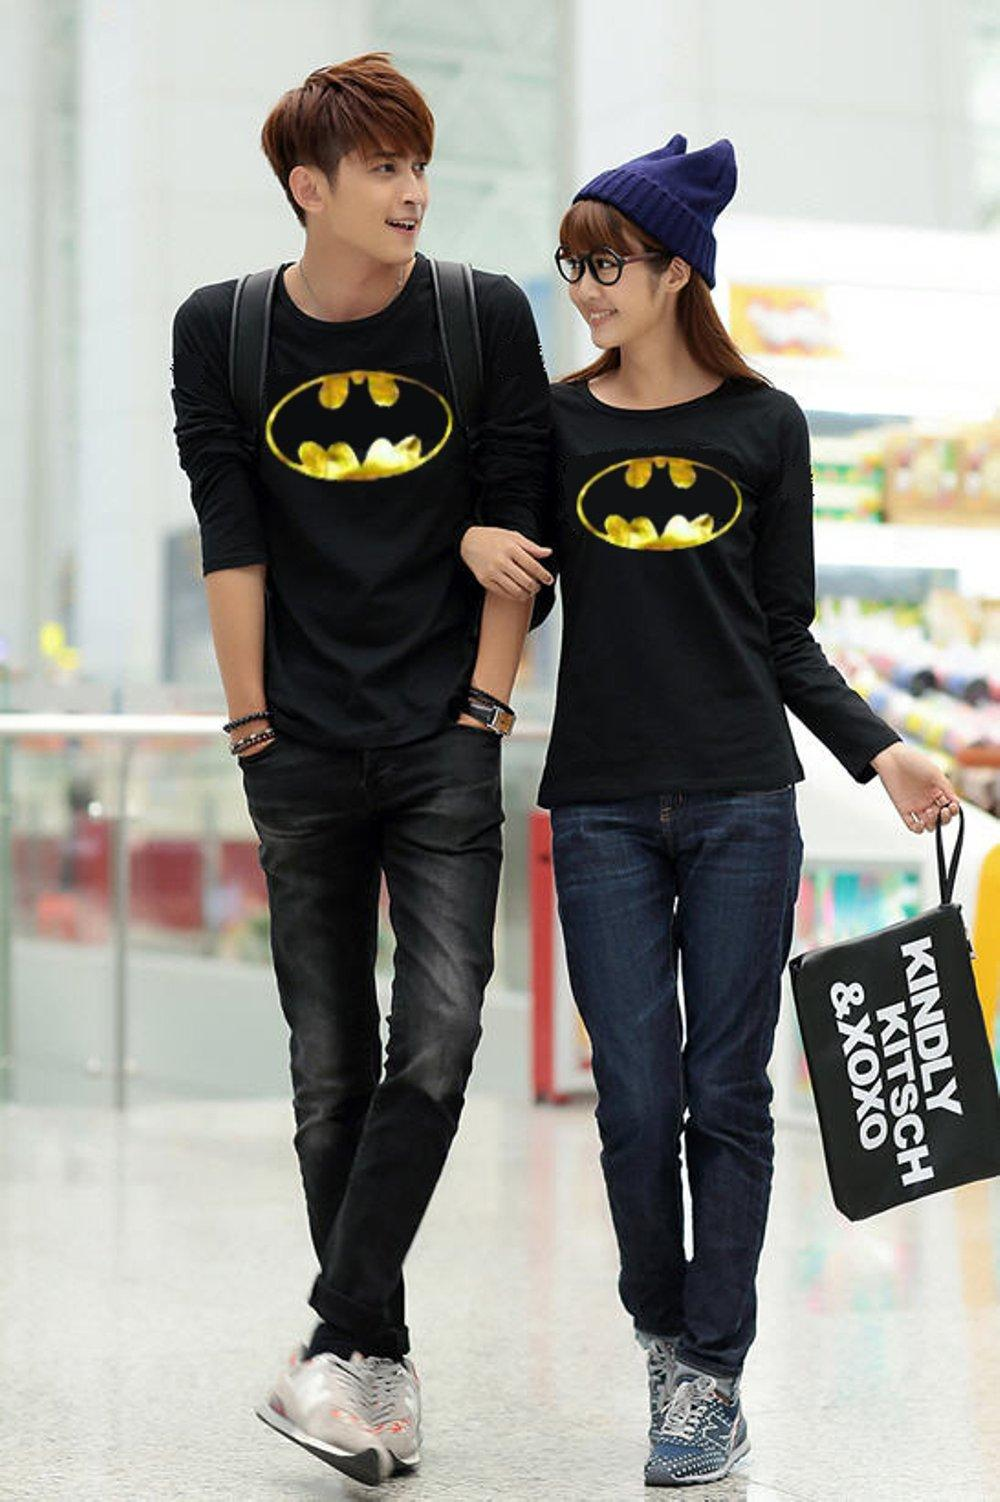 KAOS COUPLE BATMAN GOLD FOIL LP (HITAM) di lapak COUPLE GROSIR couplegrosir